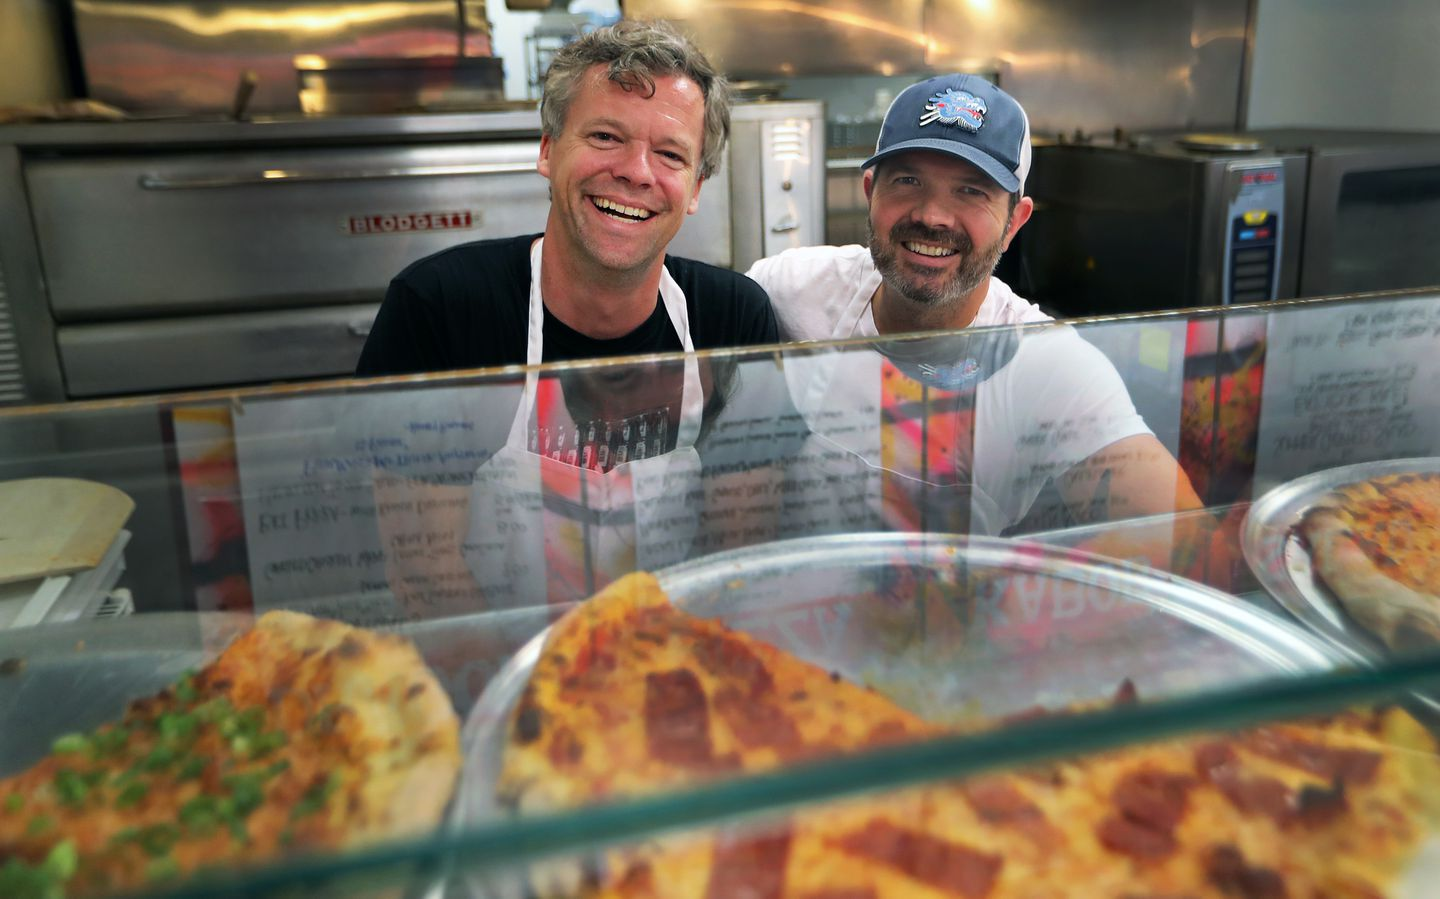 Charlie Redd (left) and Keenan Langlois serve up pizza and kabobs in Somerville's Davis Square.